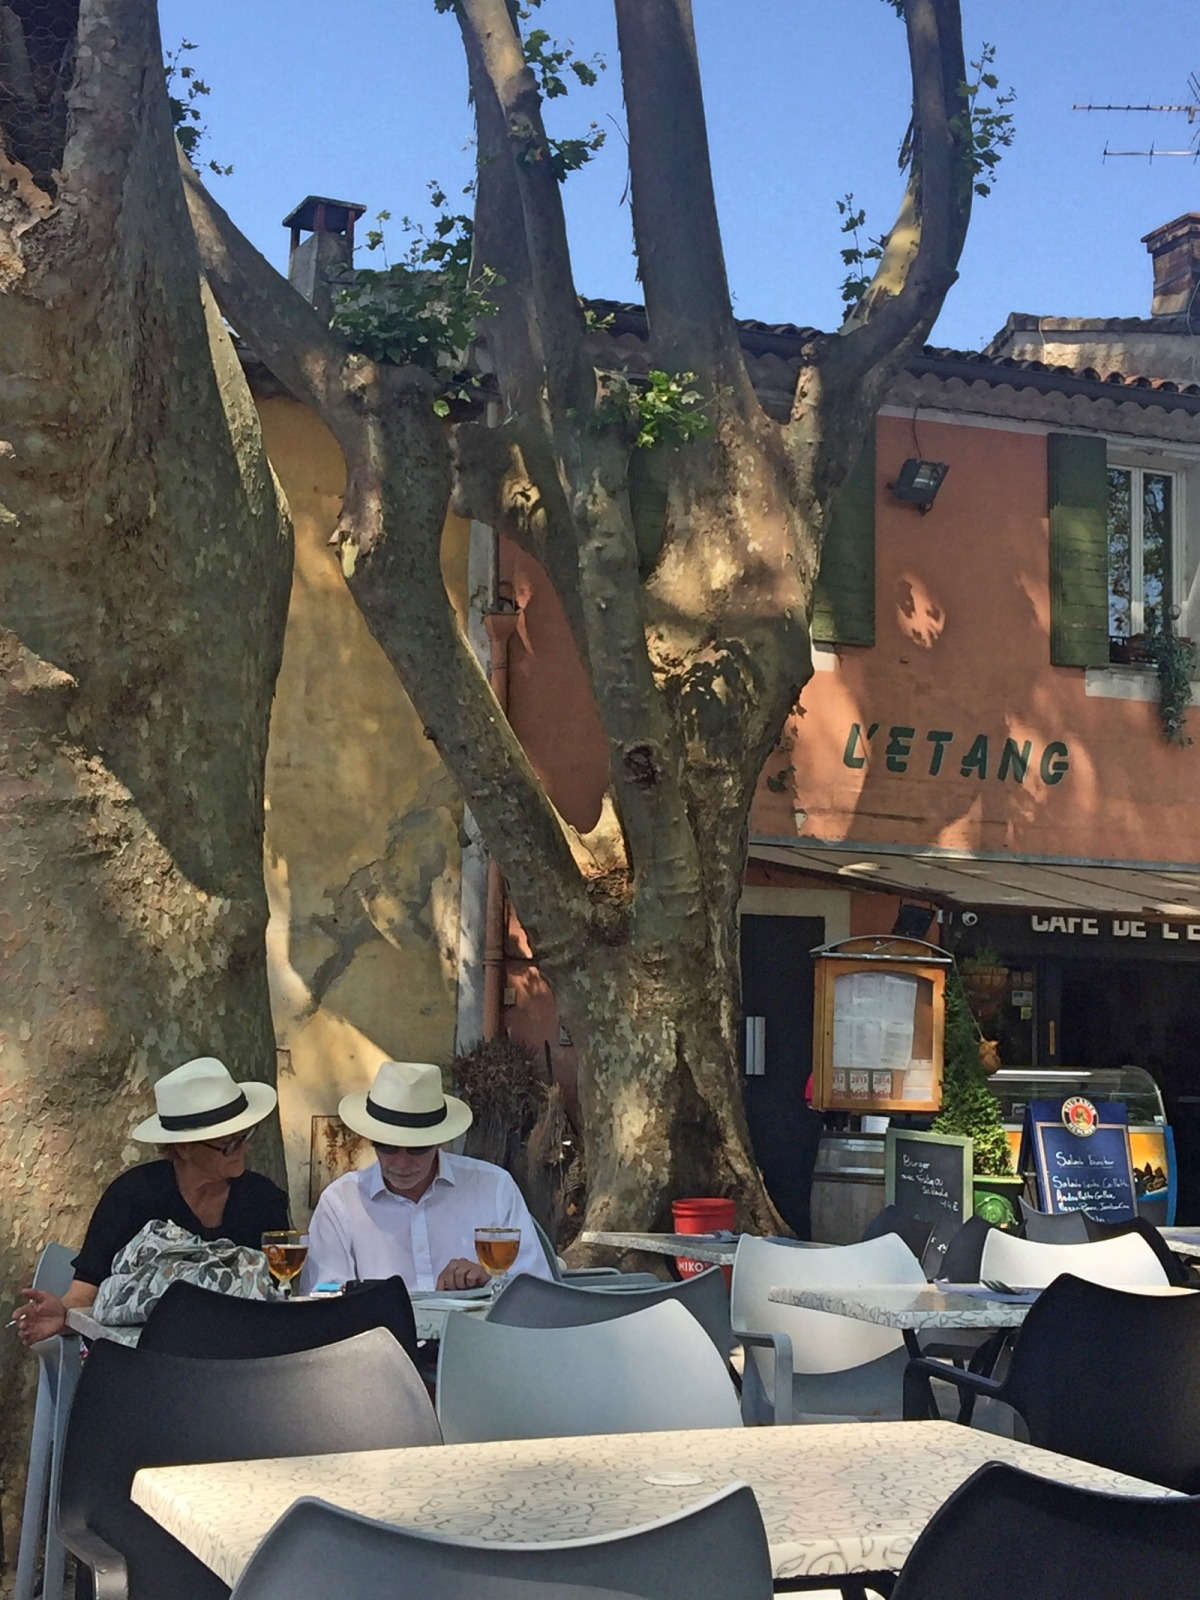 A day in provence style